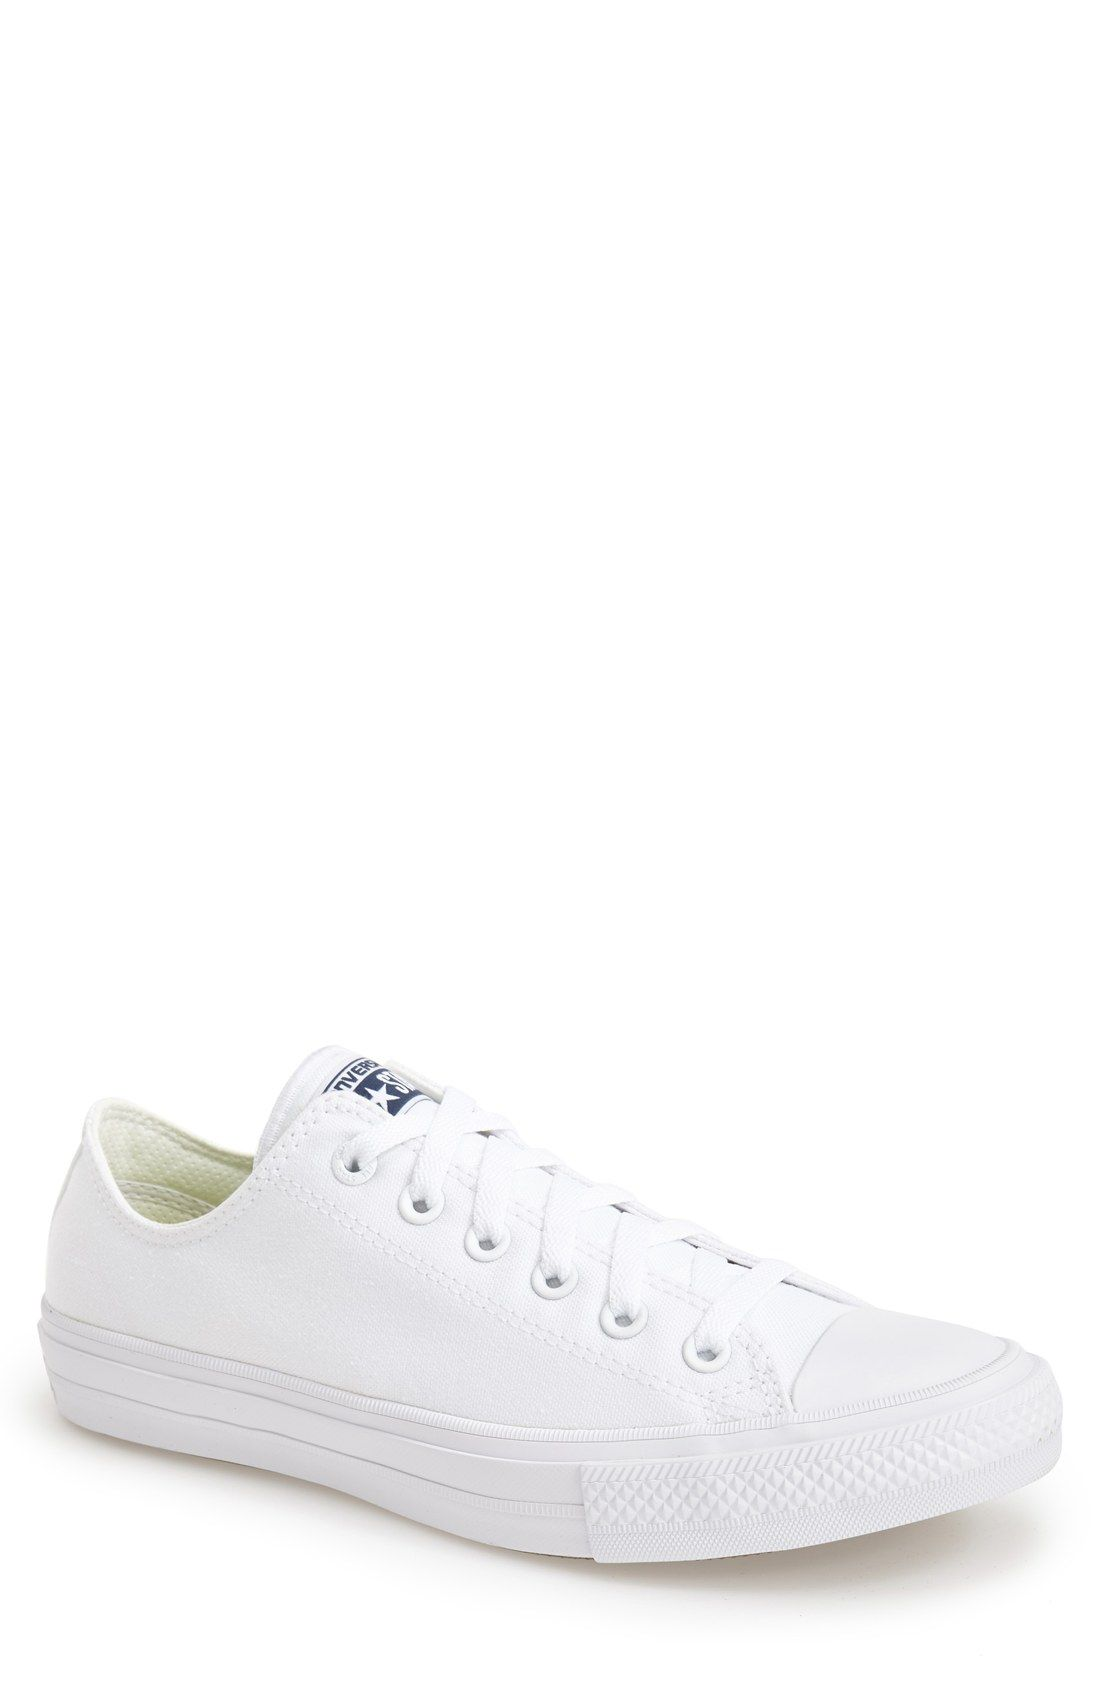 Converse CT OX Canvas Sneakers